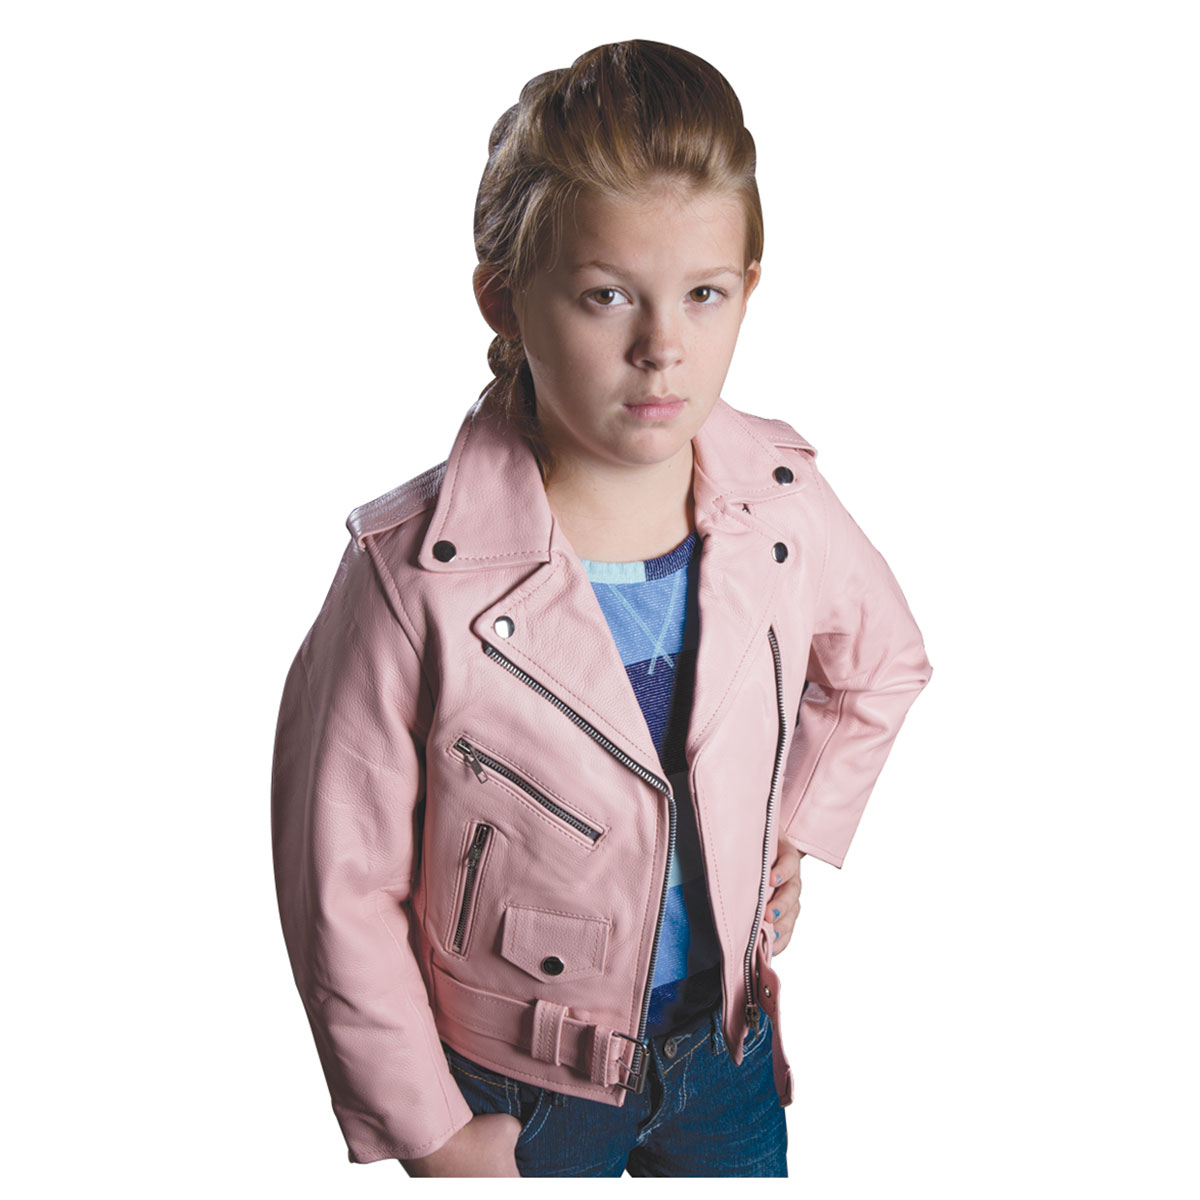 Allstate Leather Inc. Girl's Pink Cowhide Leather Motorcycle Jacket